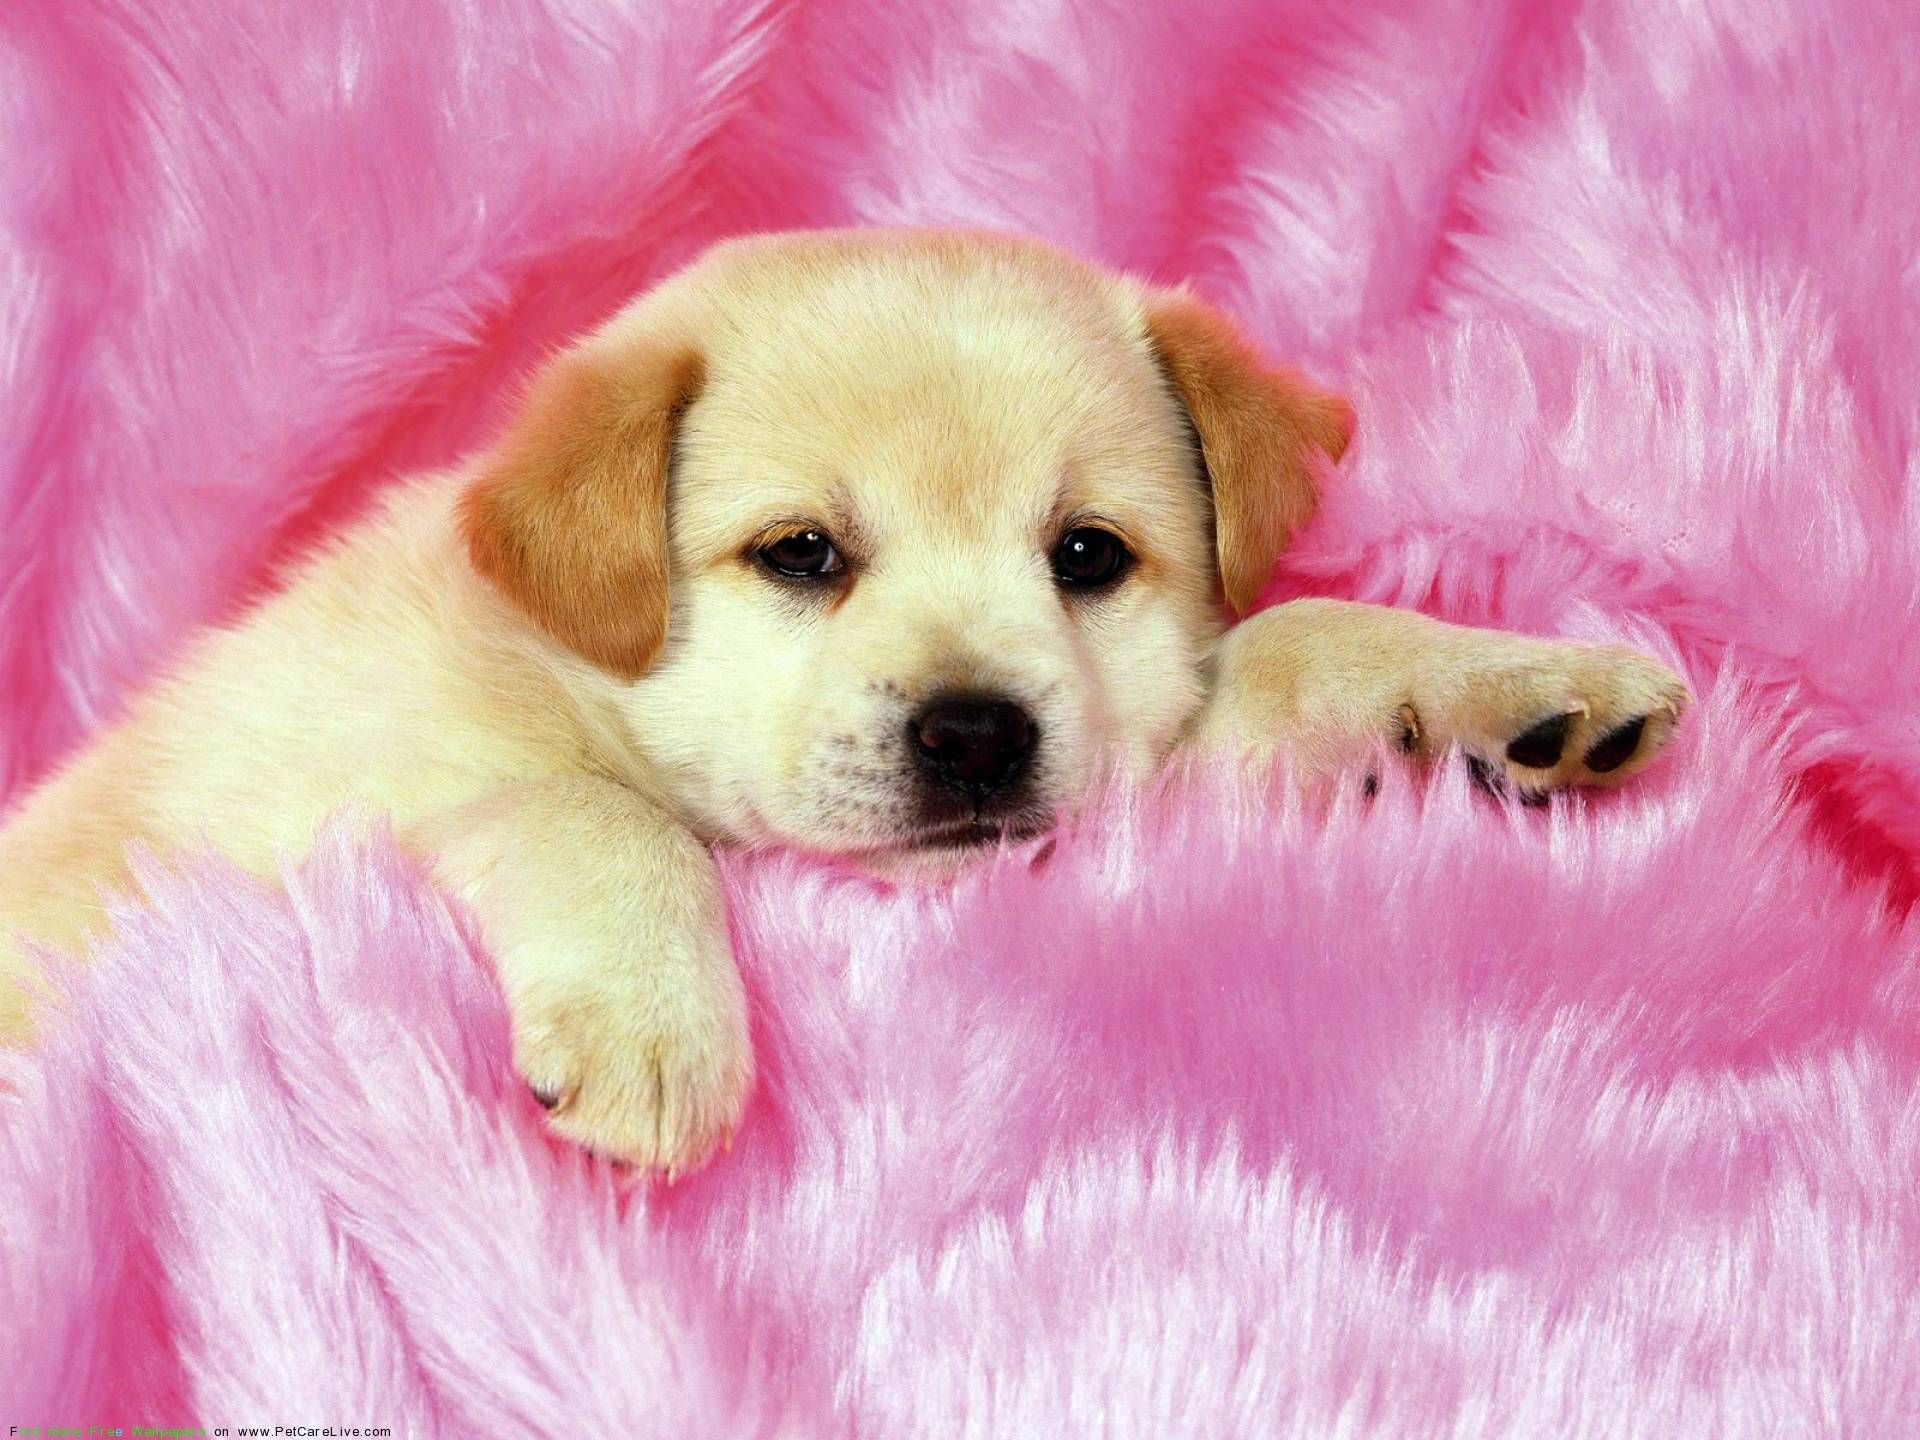 Cute dogs and puppies wallpaper pets pinterest puppies cute